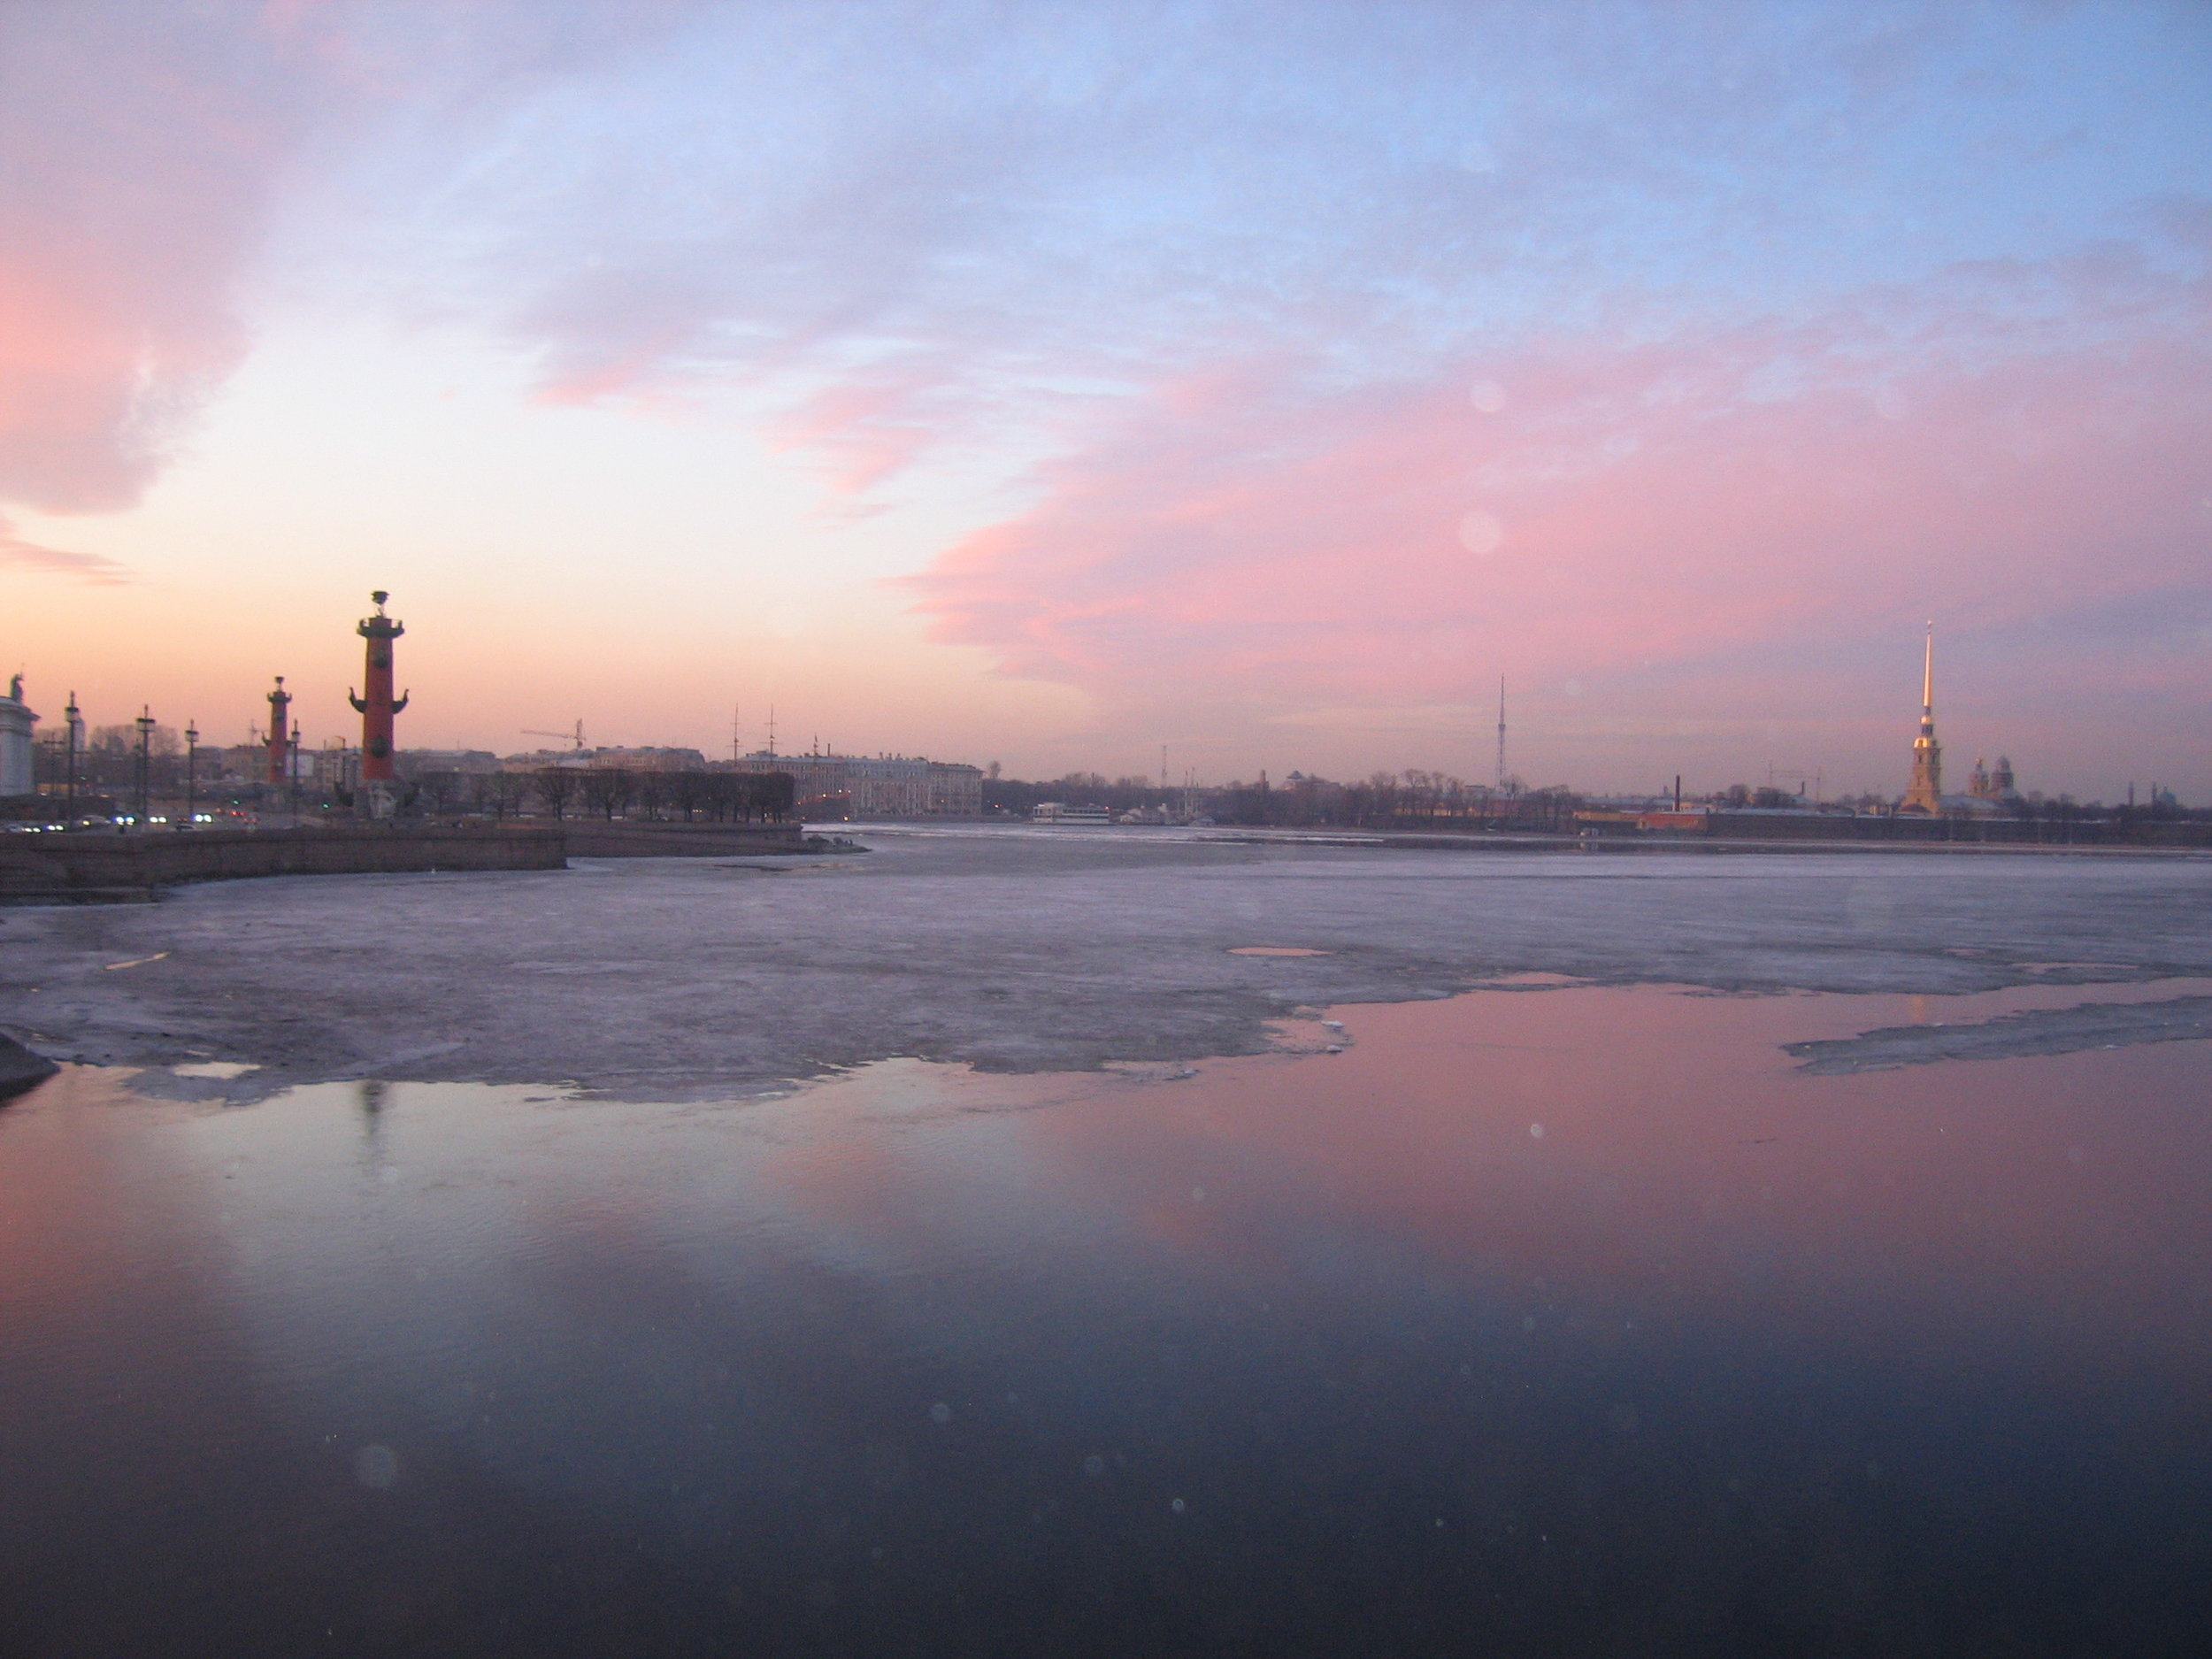 The Neva River runs through St.Petersburg. The April weather is turning the surface ice into water.